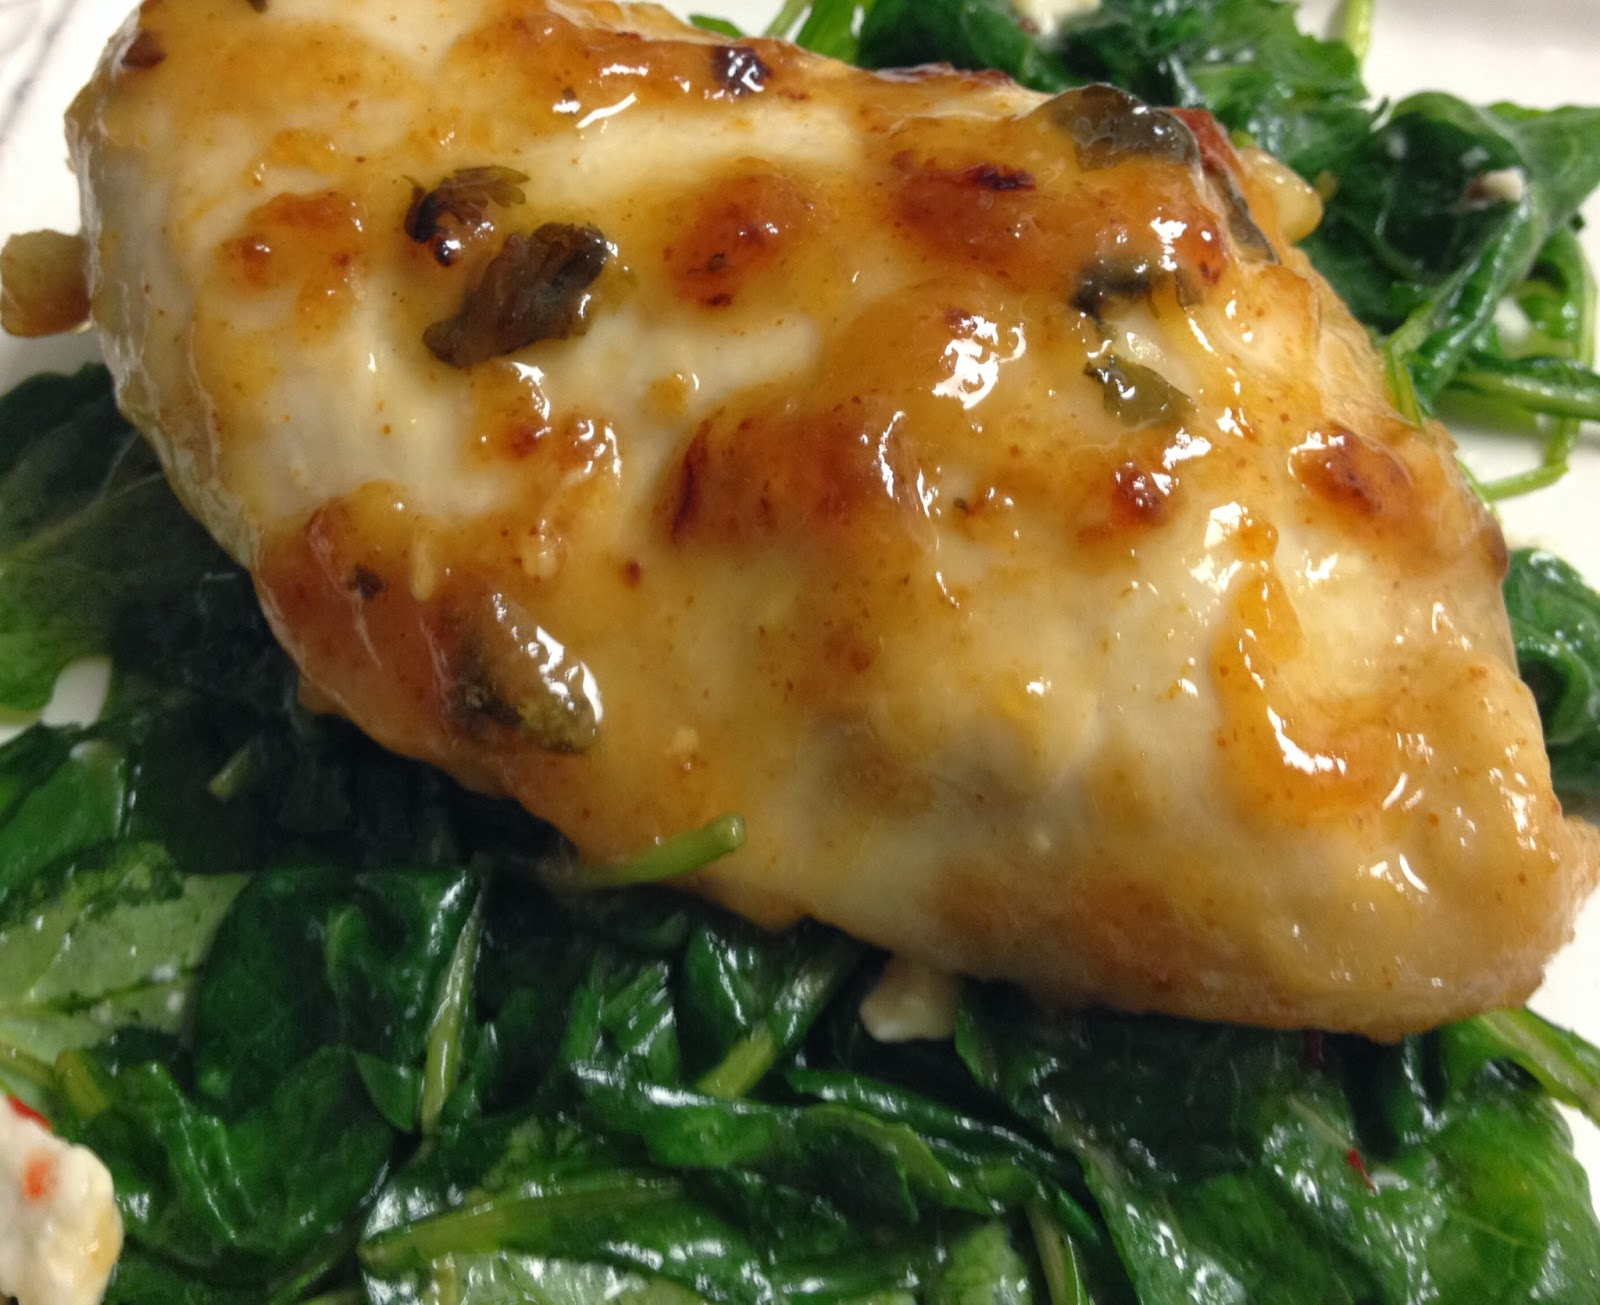 lime-marinade chicken served with sweet chili kale)